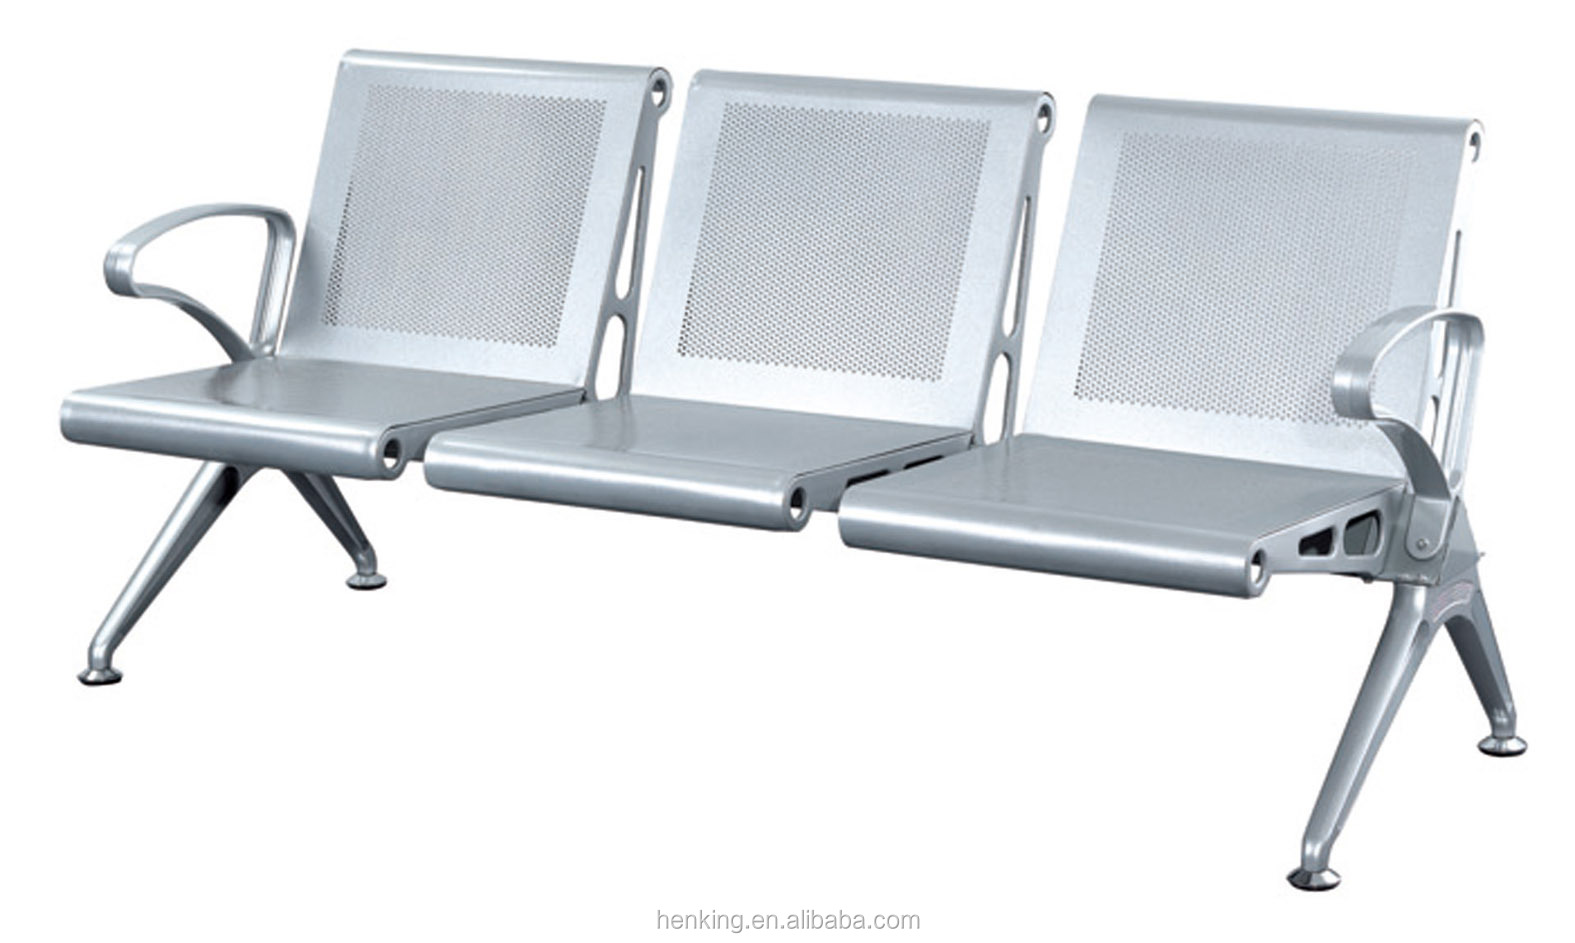 Henking Airport Chair3 Seater Waiting Seats H317 3